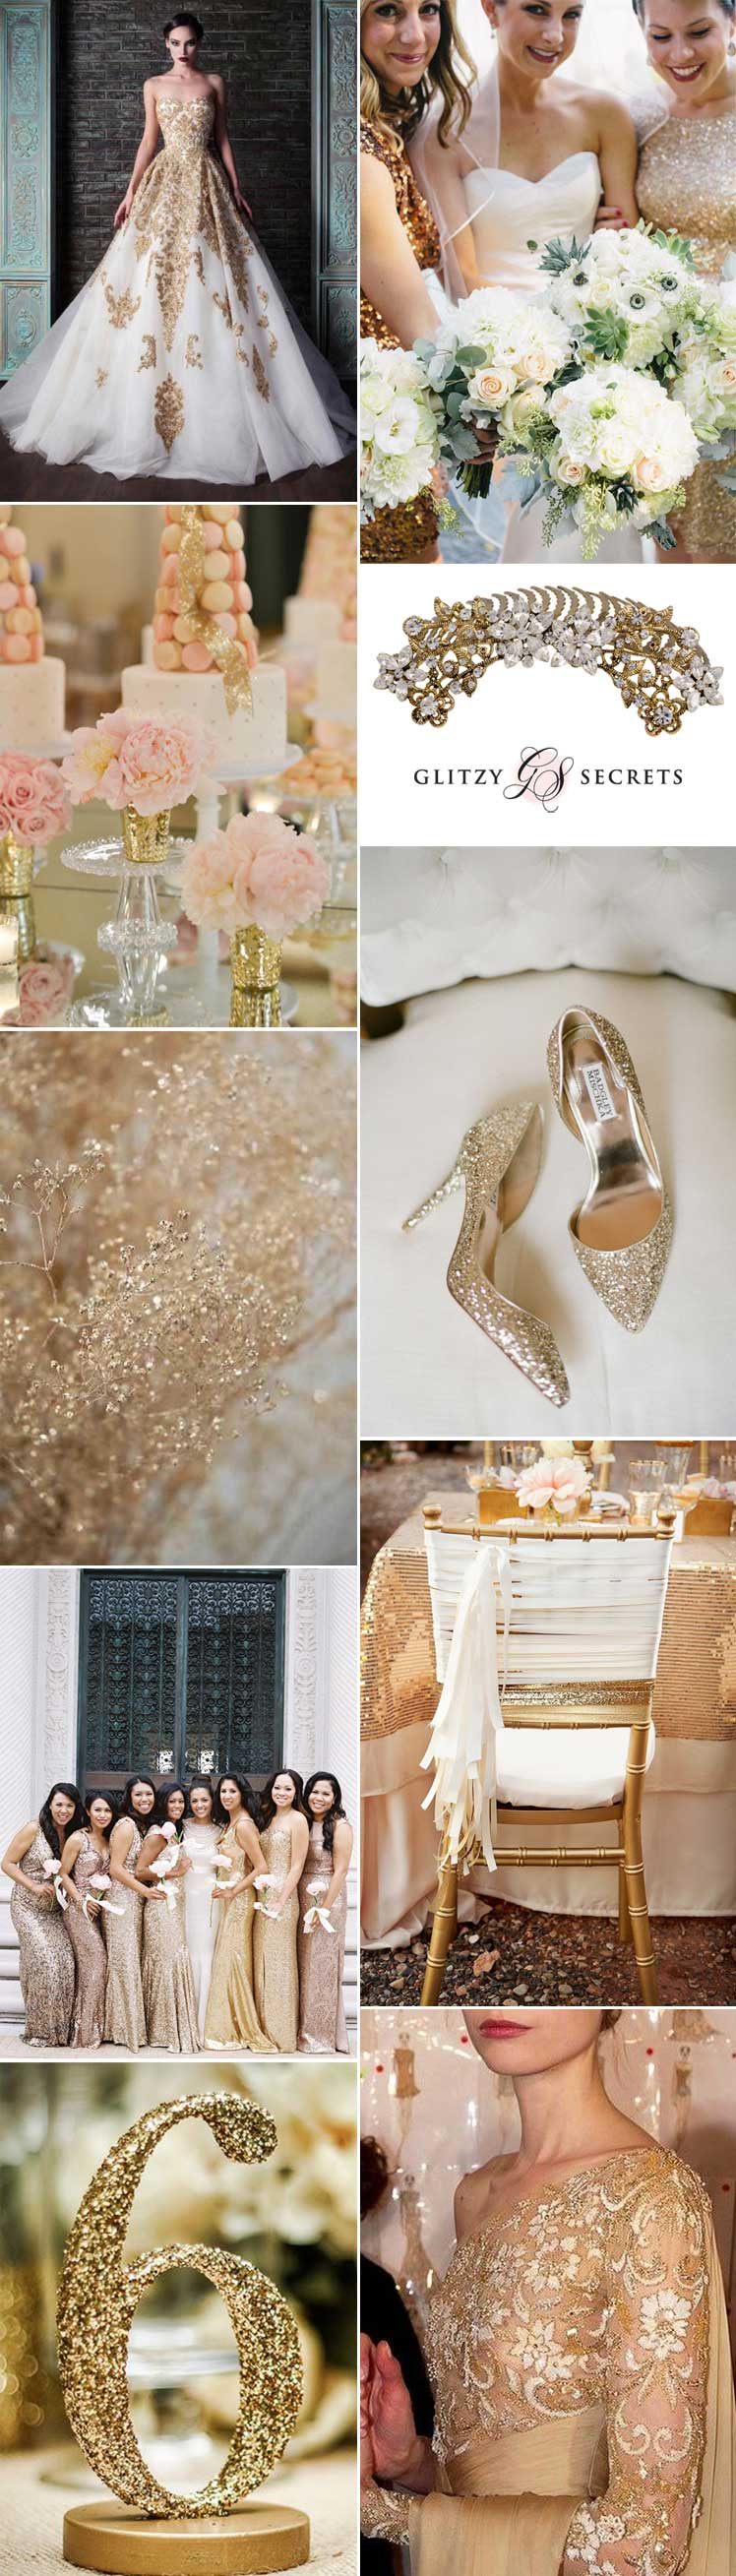 sensational glittering gold wedding ideas